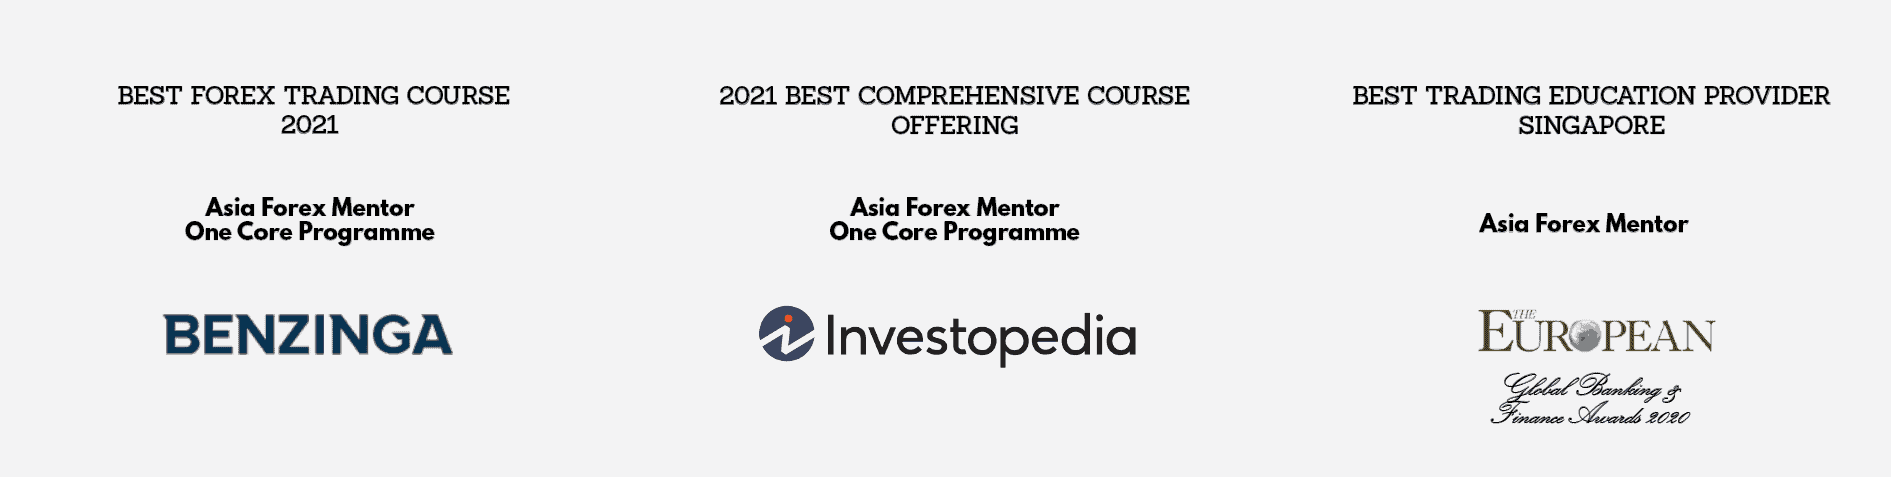 best forex trading course award to Asia Forex Mentor